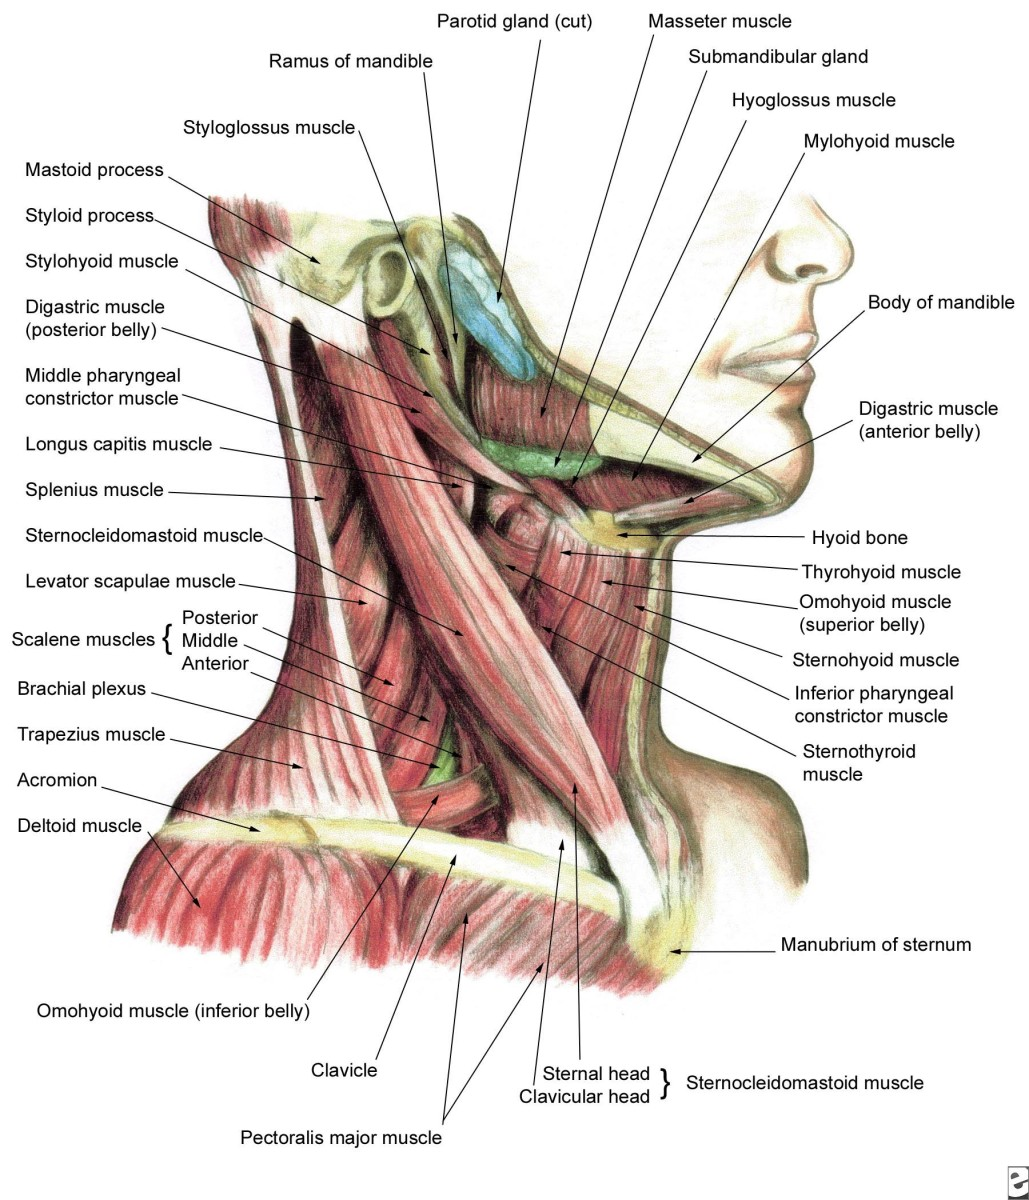 Shoulder Neck Muscles Muscles of The Neck